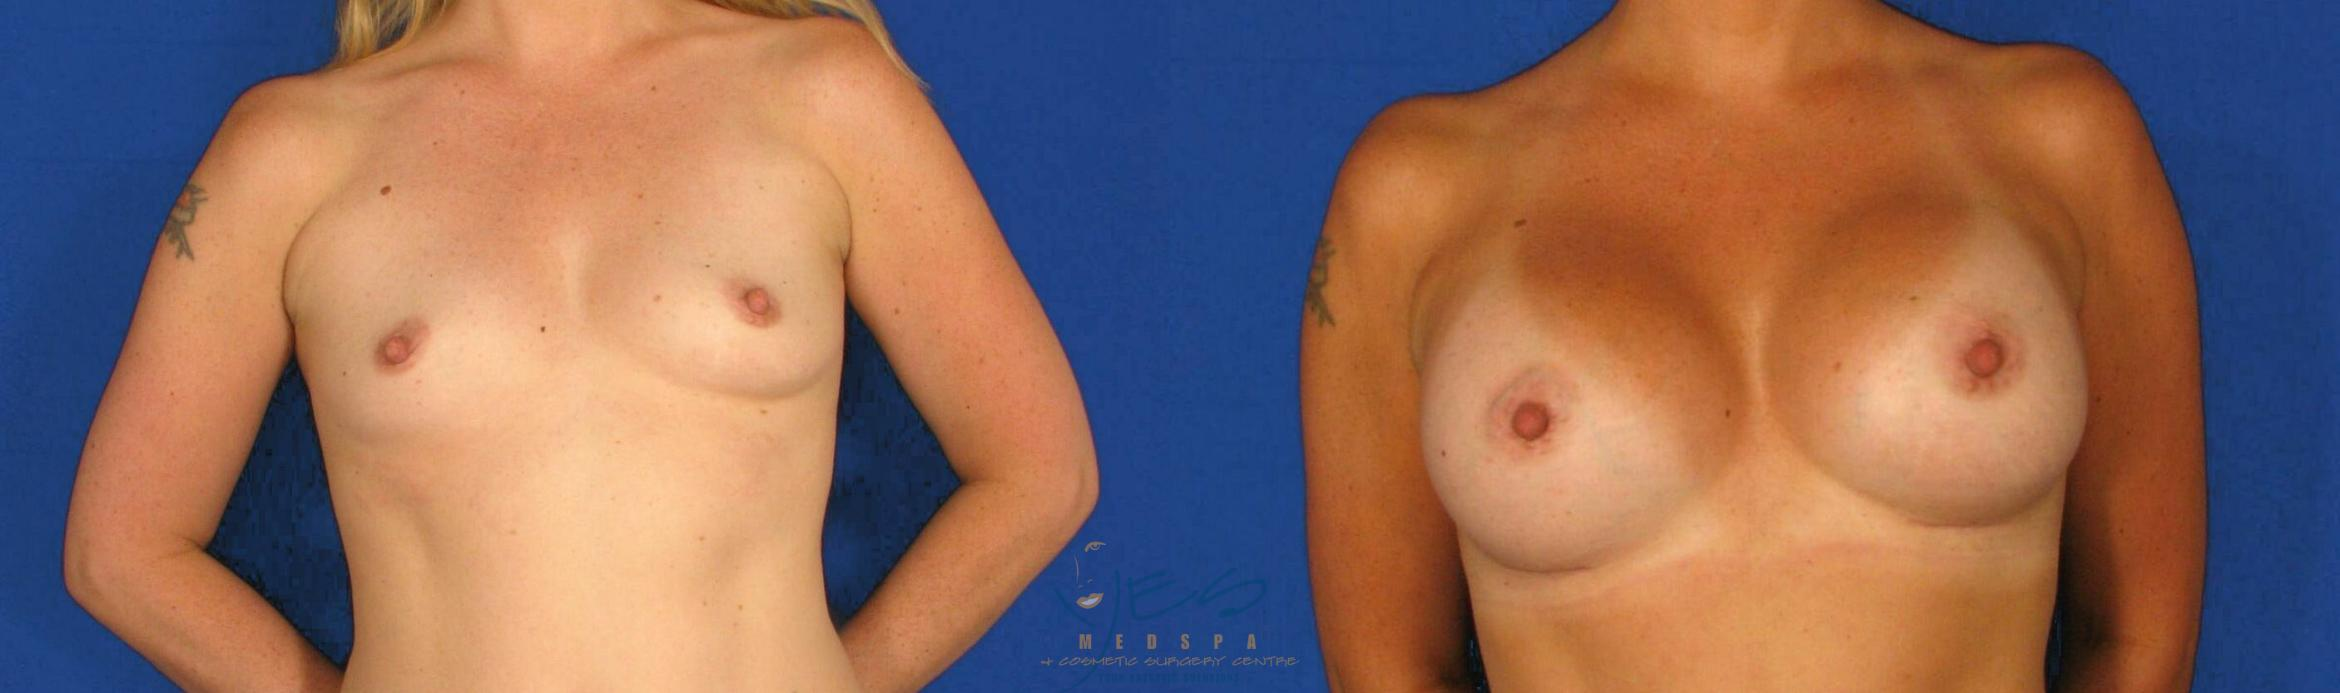 Breast Augmentation Case 77 Before & After View #1 | Langley, BC | YES Medspa & Cosmetic Surgery Centre